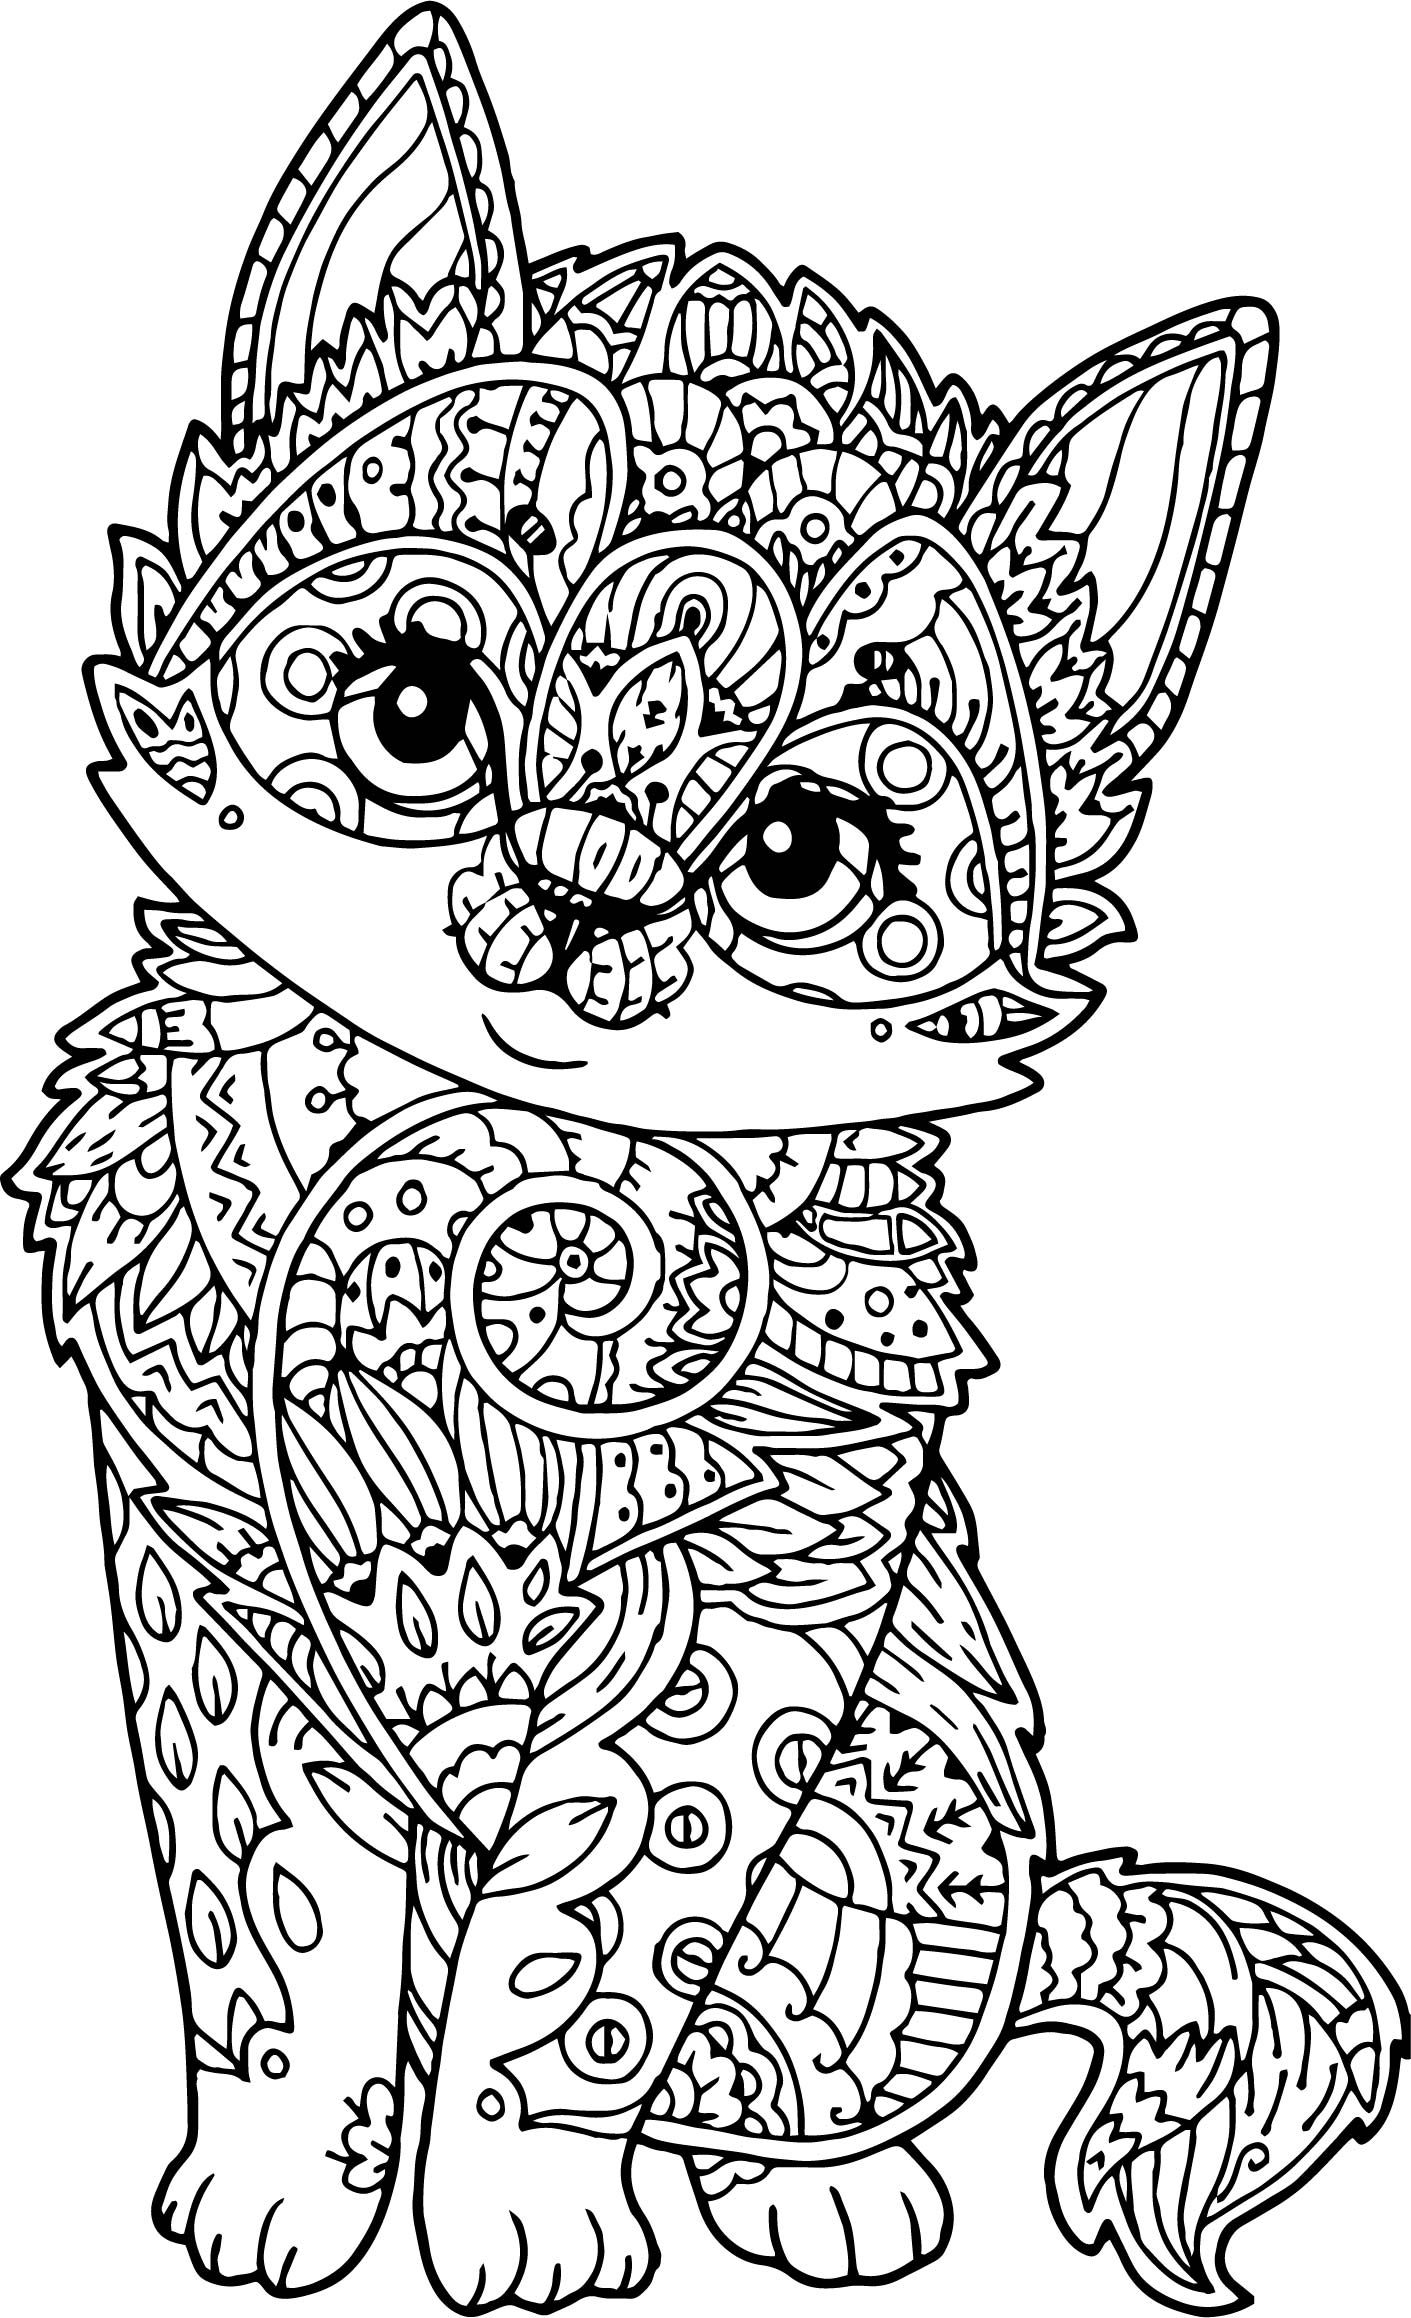 Cat Coloring Pages Coloring Rocks